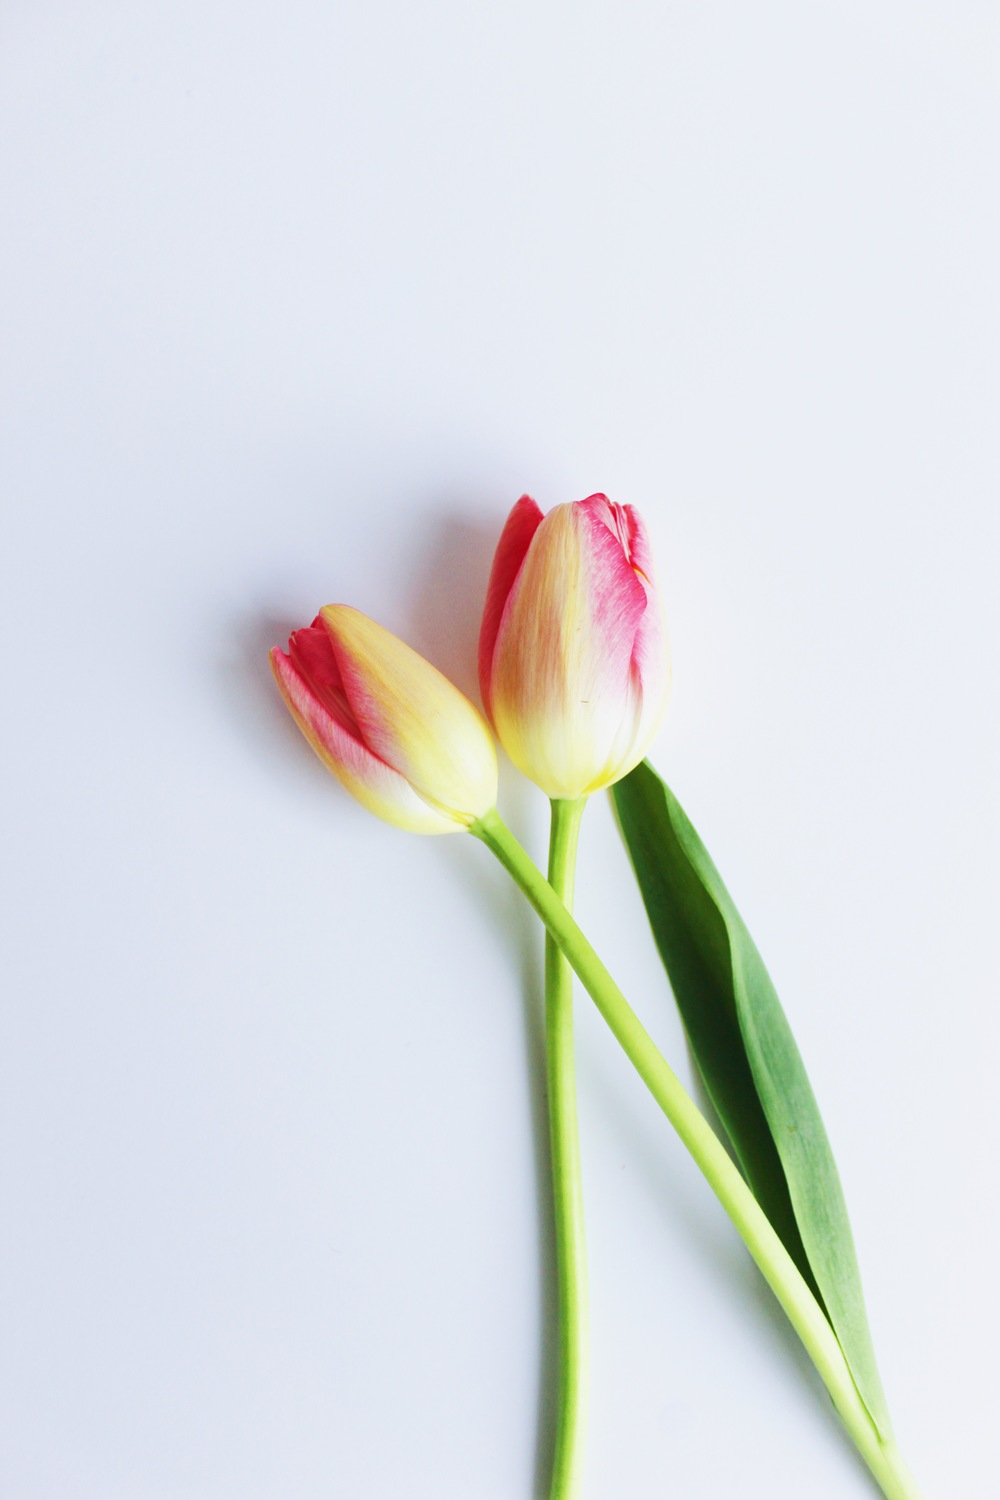 Friday Flowers - Red and Yellow Tulips | Sundays and Somedays